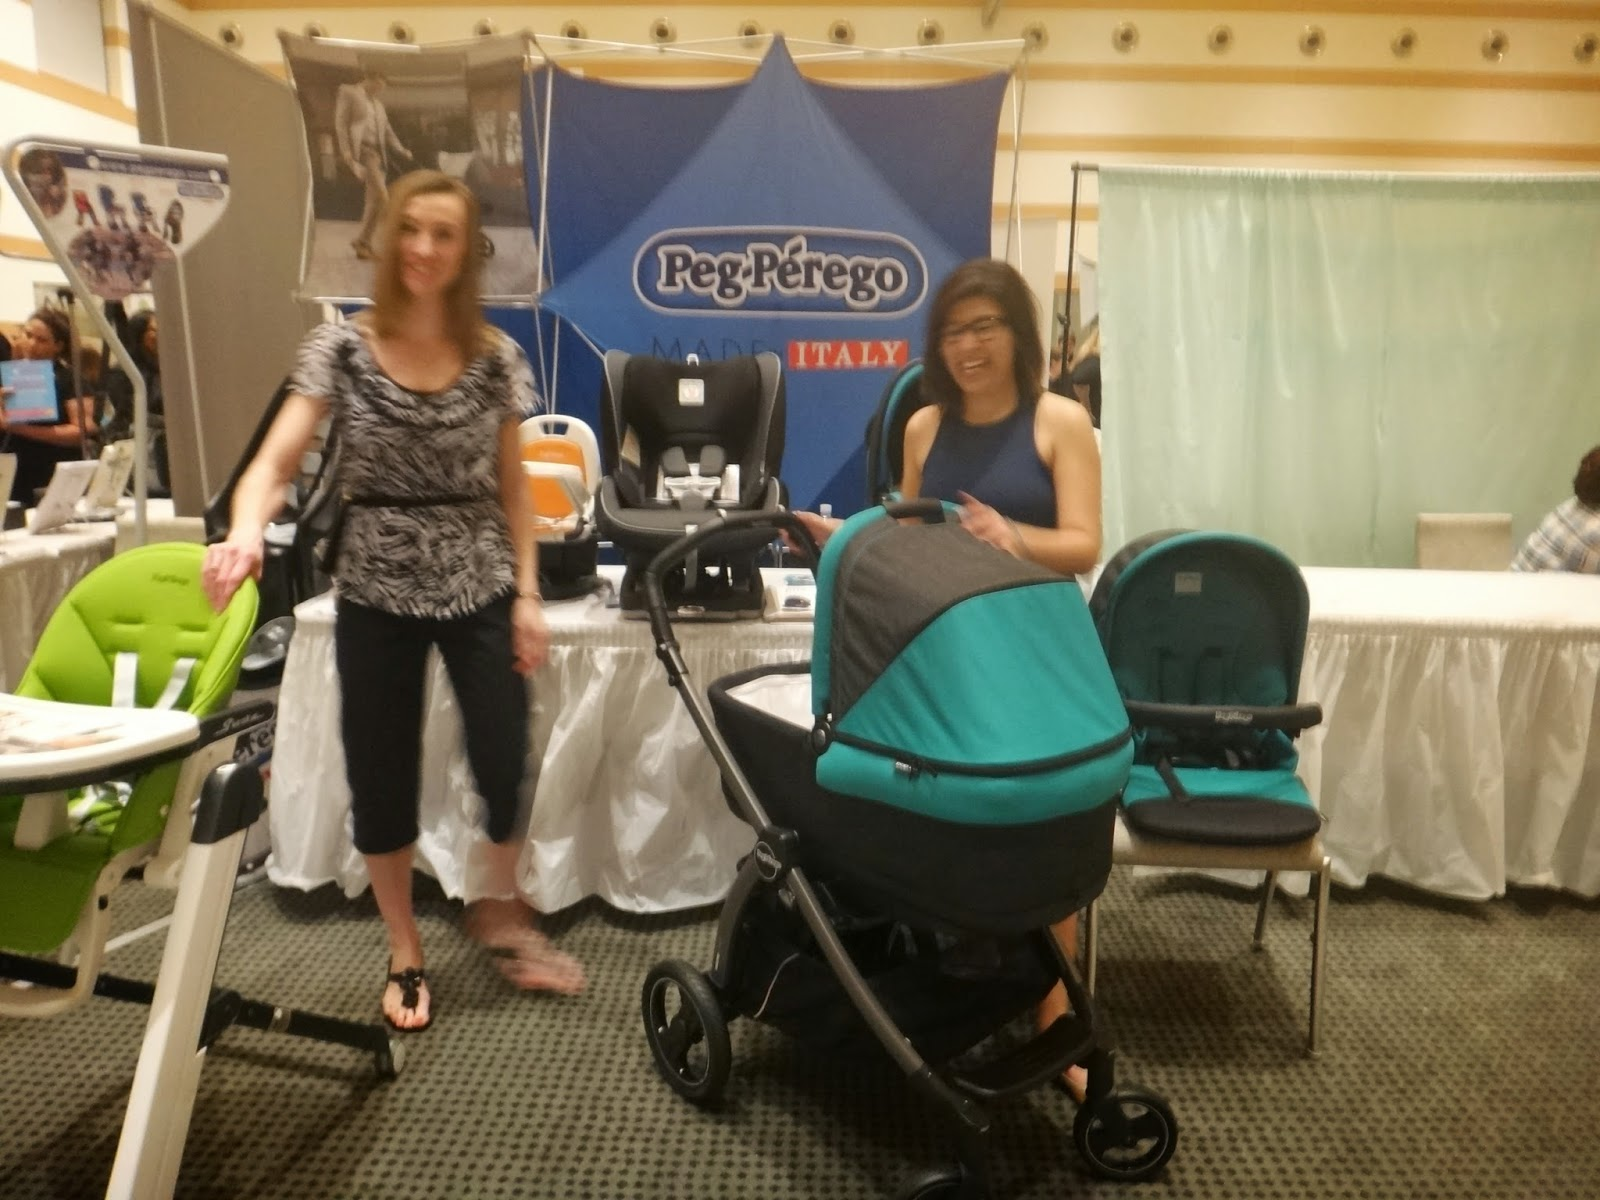 Baby Car Seat Price At Game Stores Strollerqueenreviews Big City Mom 39;s Biggest Baby Shower